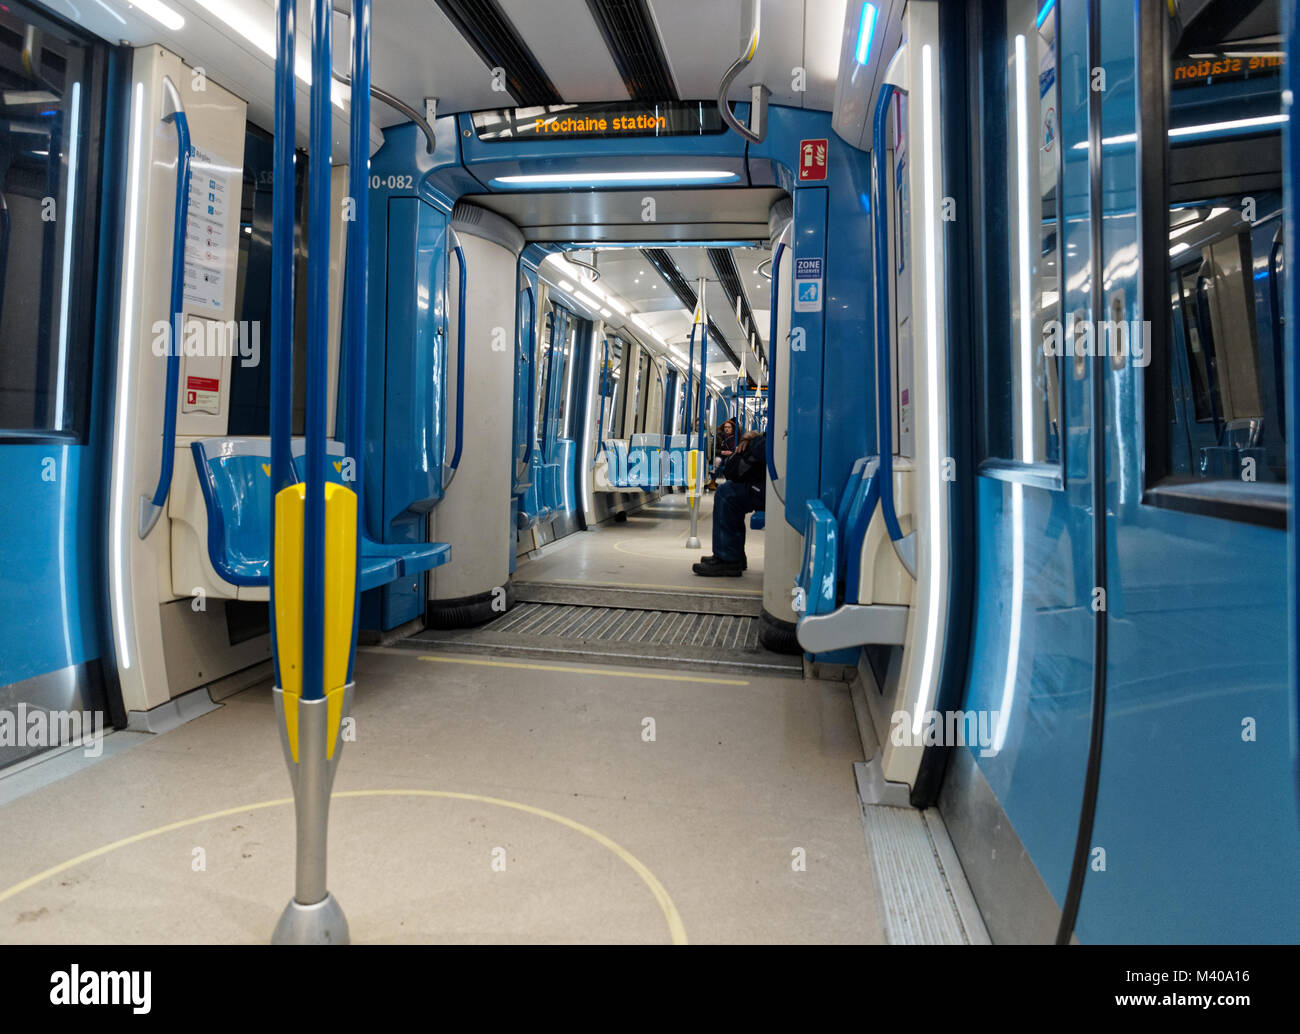 Interior of the new Azur metro cars in Montreal,Canada - Stock Image